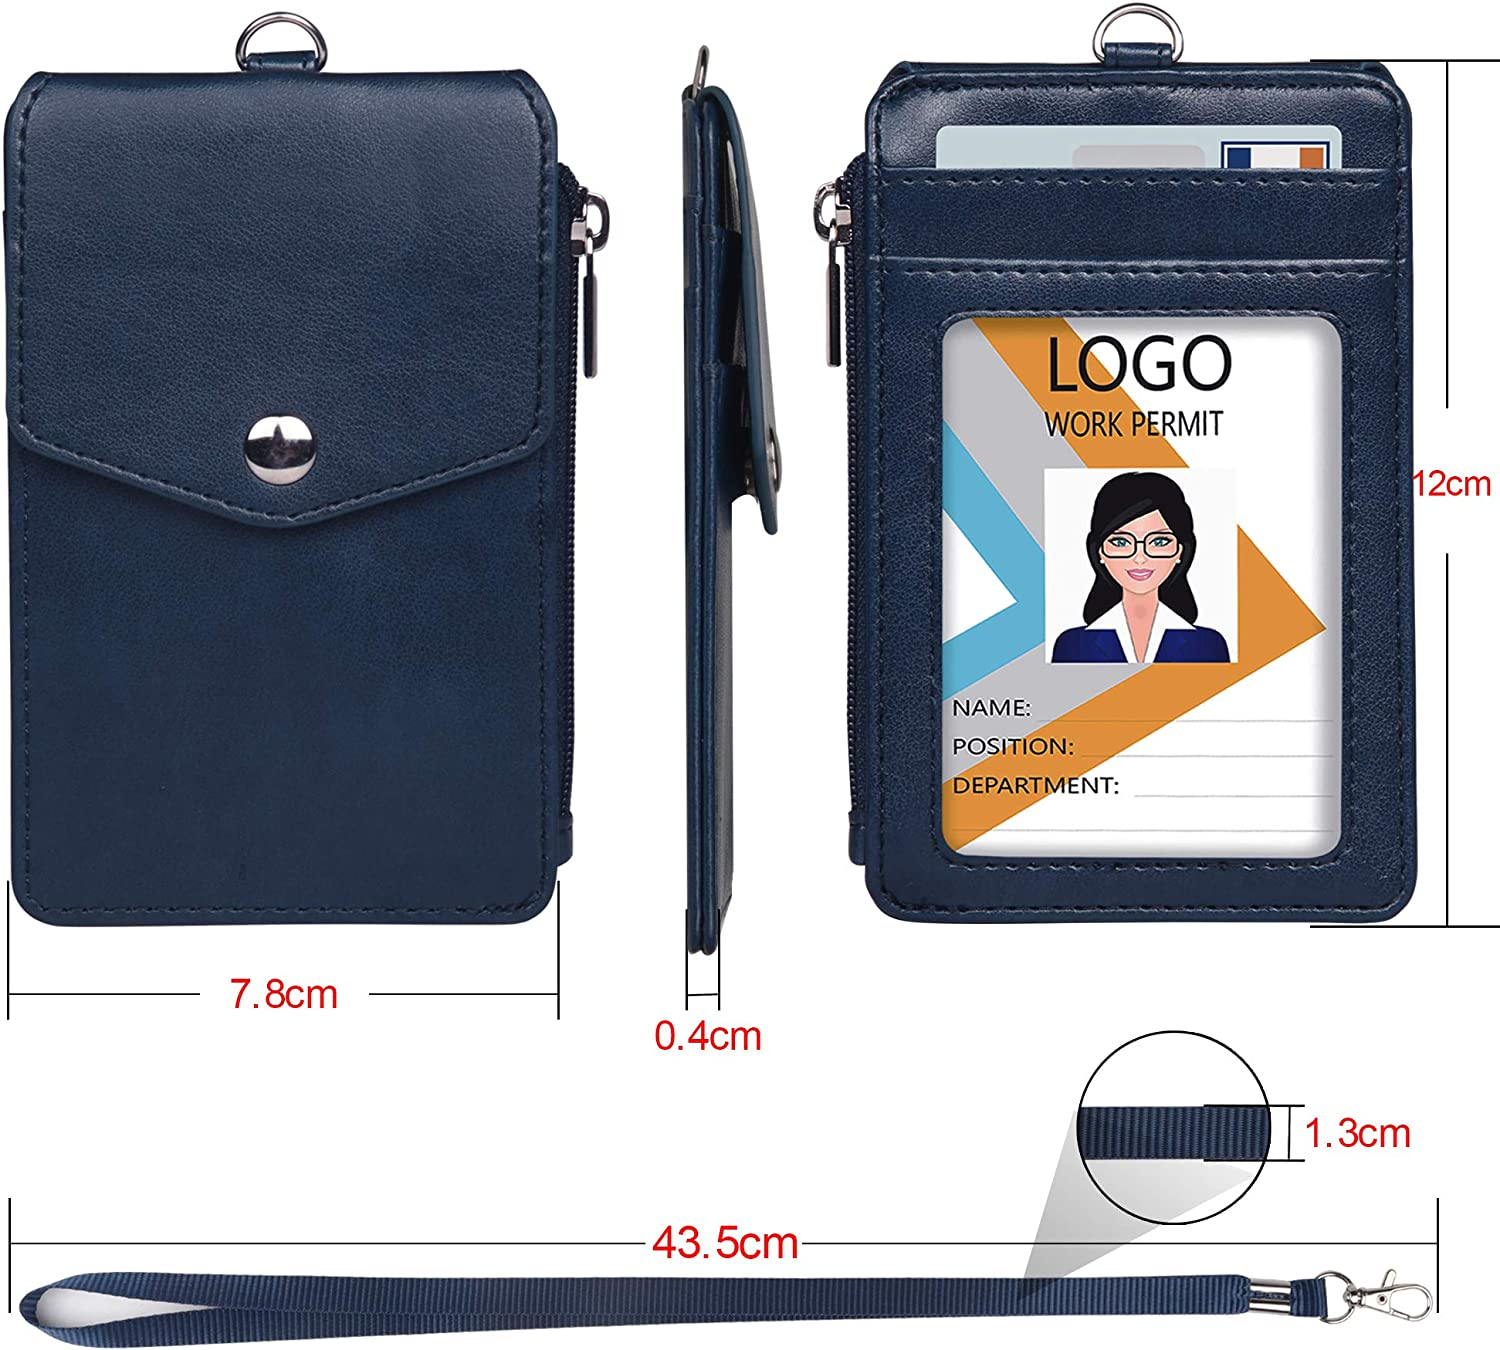 Credit Cards,Driver Licence Leather Badge Holder with Lanyard,1 Clear ID Window and 3 Card Slots with Secure Snap Button Cover Purple 1 Zipper Wallet Pocket,1 Durable Nylon Lanyard for Offices ID,School ID